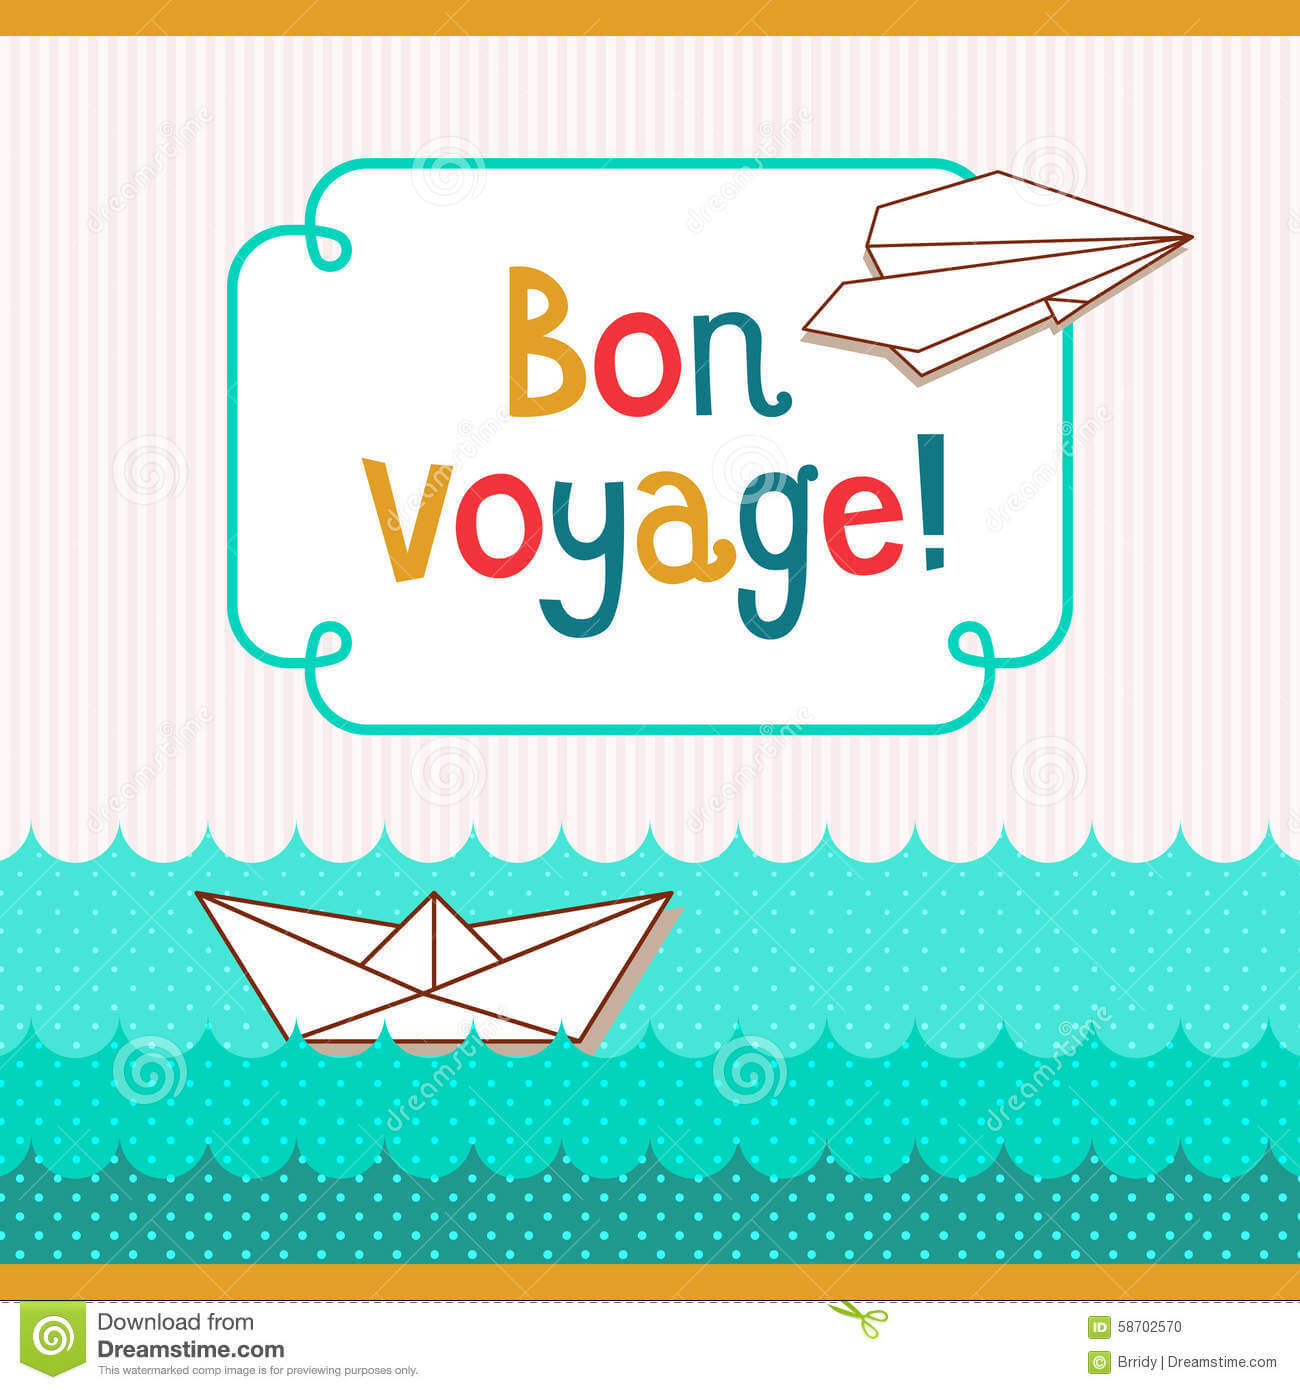 Bon Voyage Card Template ] - Bon Voyage Postcards Zazzle Com Inside Bon Voyage Card Template